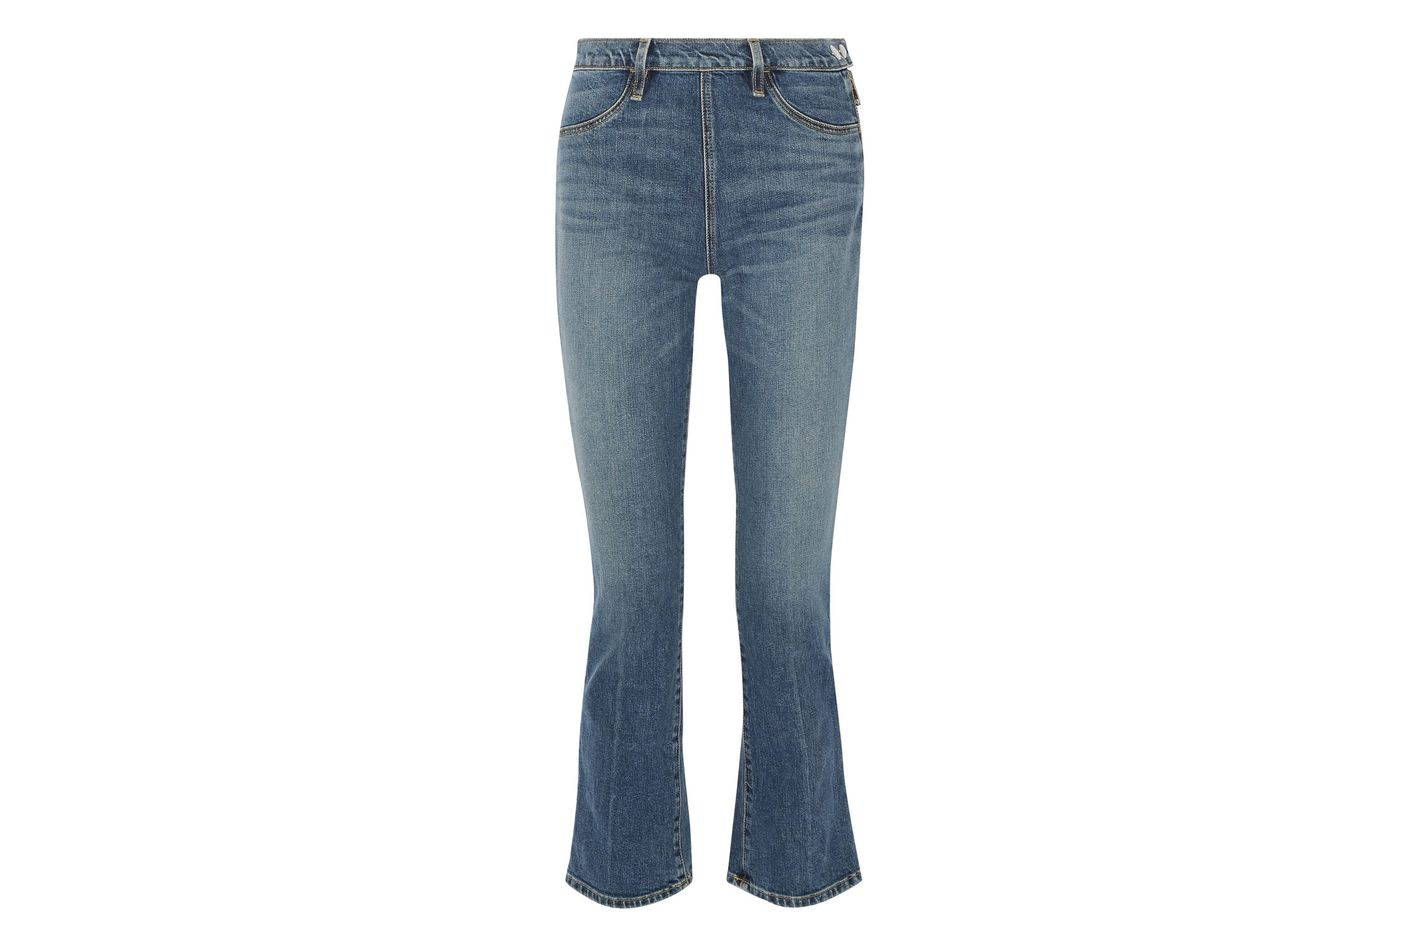 Elizabeth & James Nerd Cropped Mid-rise Flared Jeans